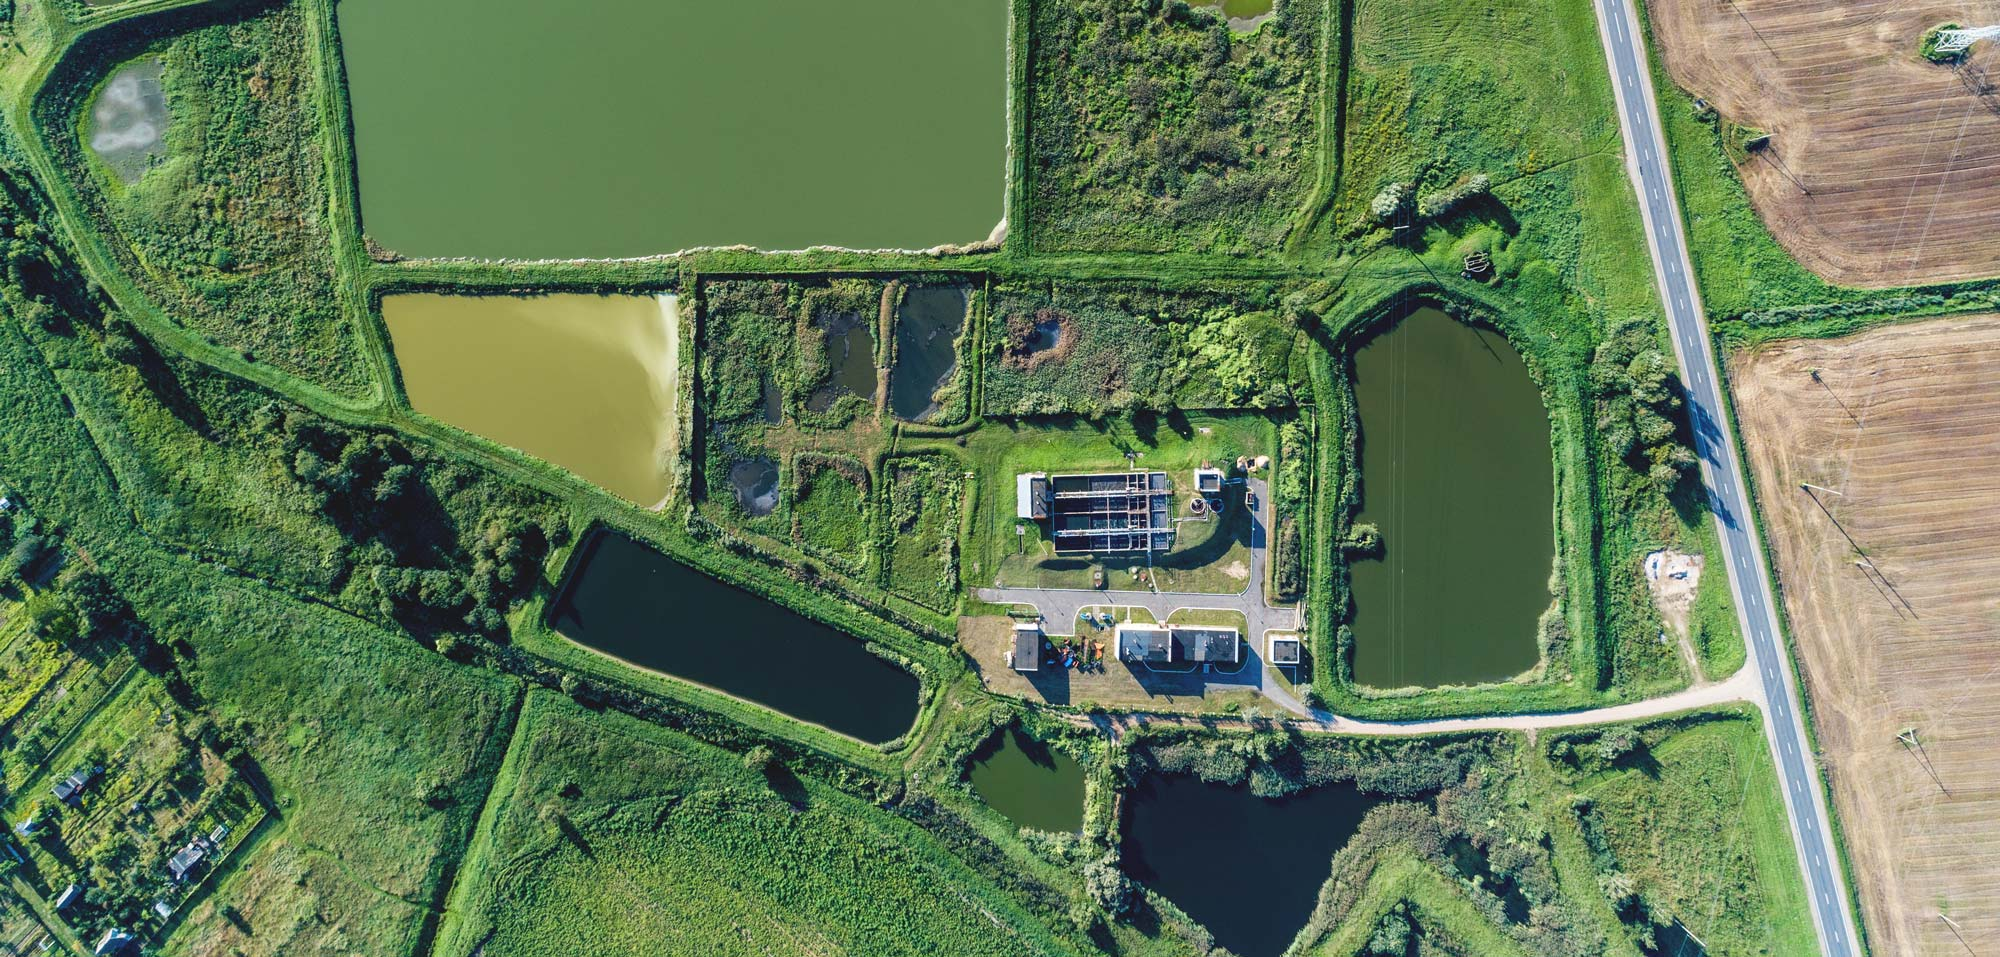 Wastewater: Excess or asset?